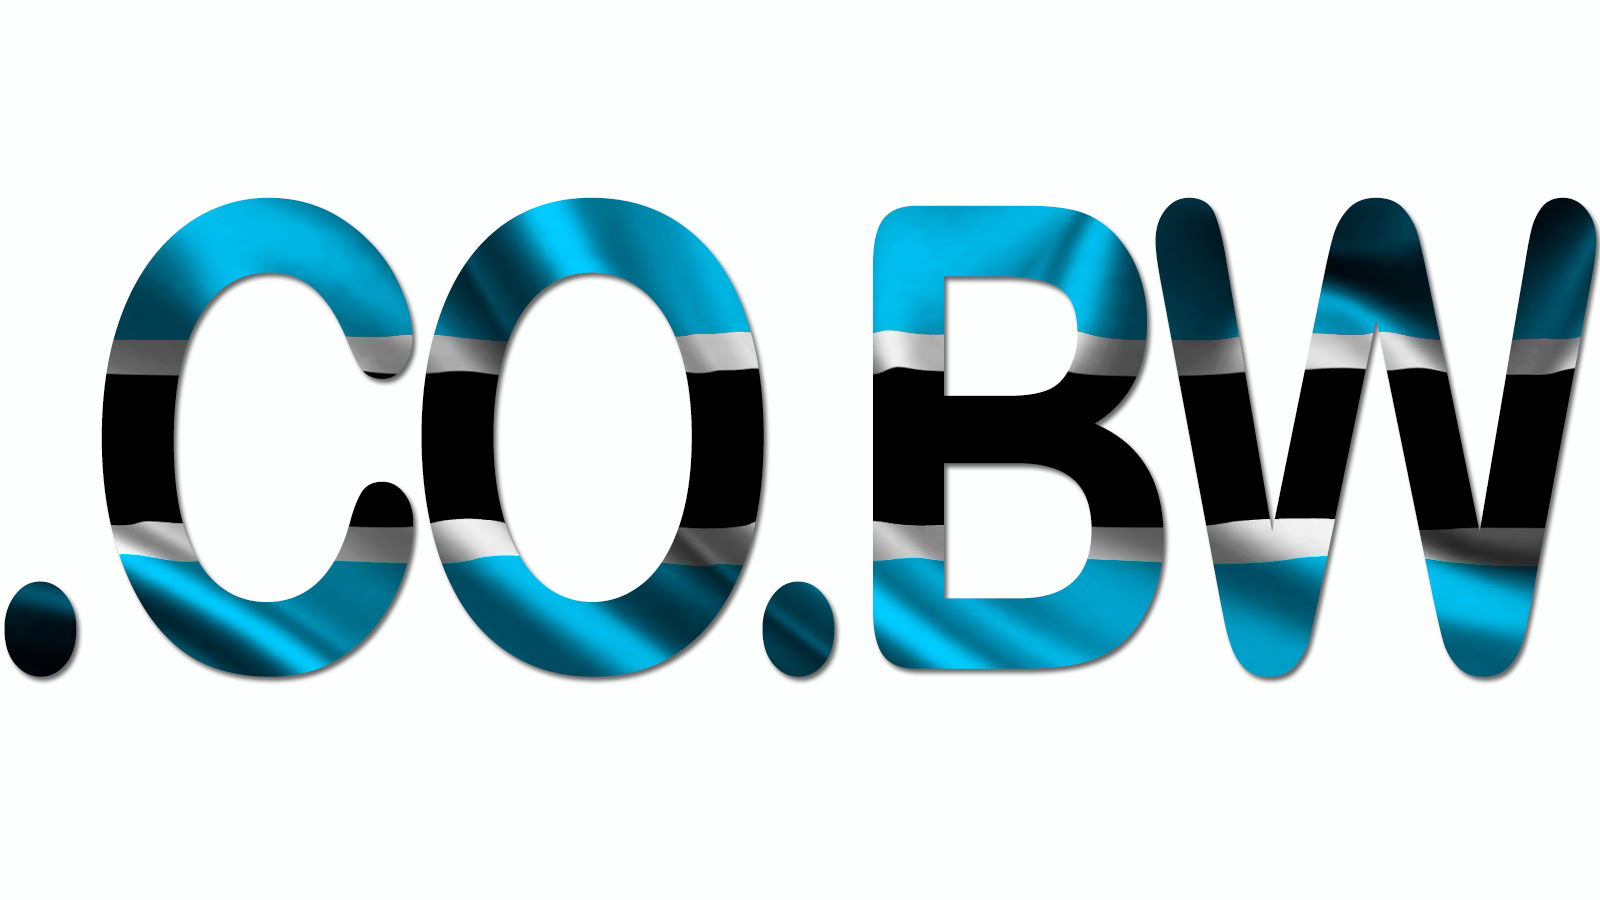 .co.bw domain extension image